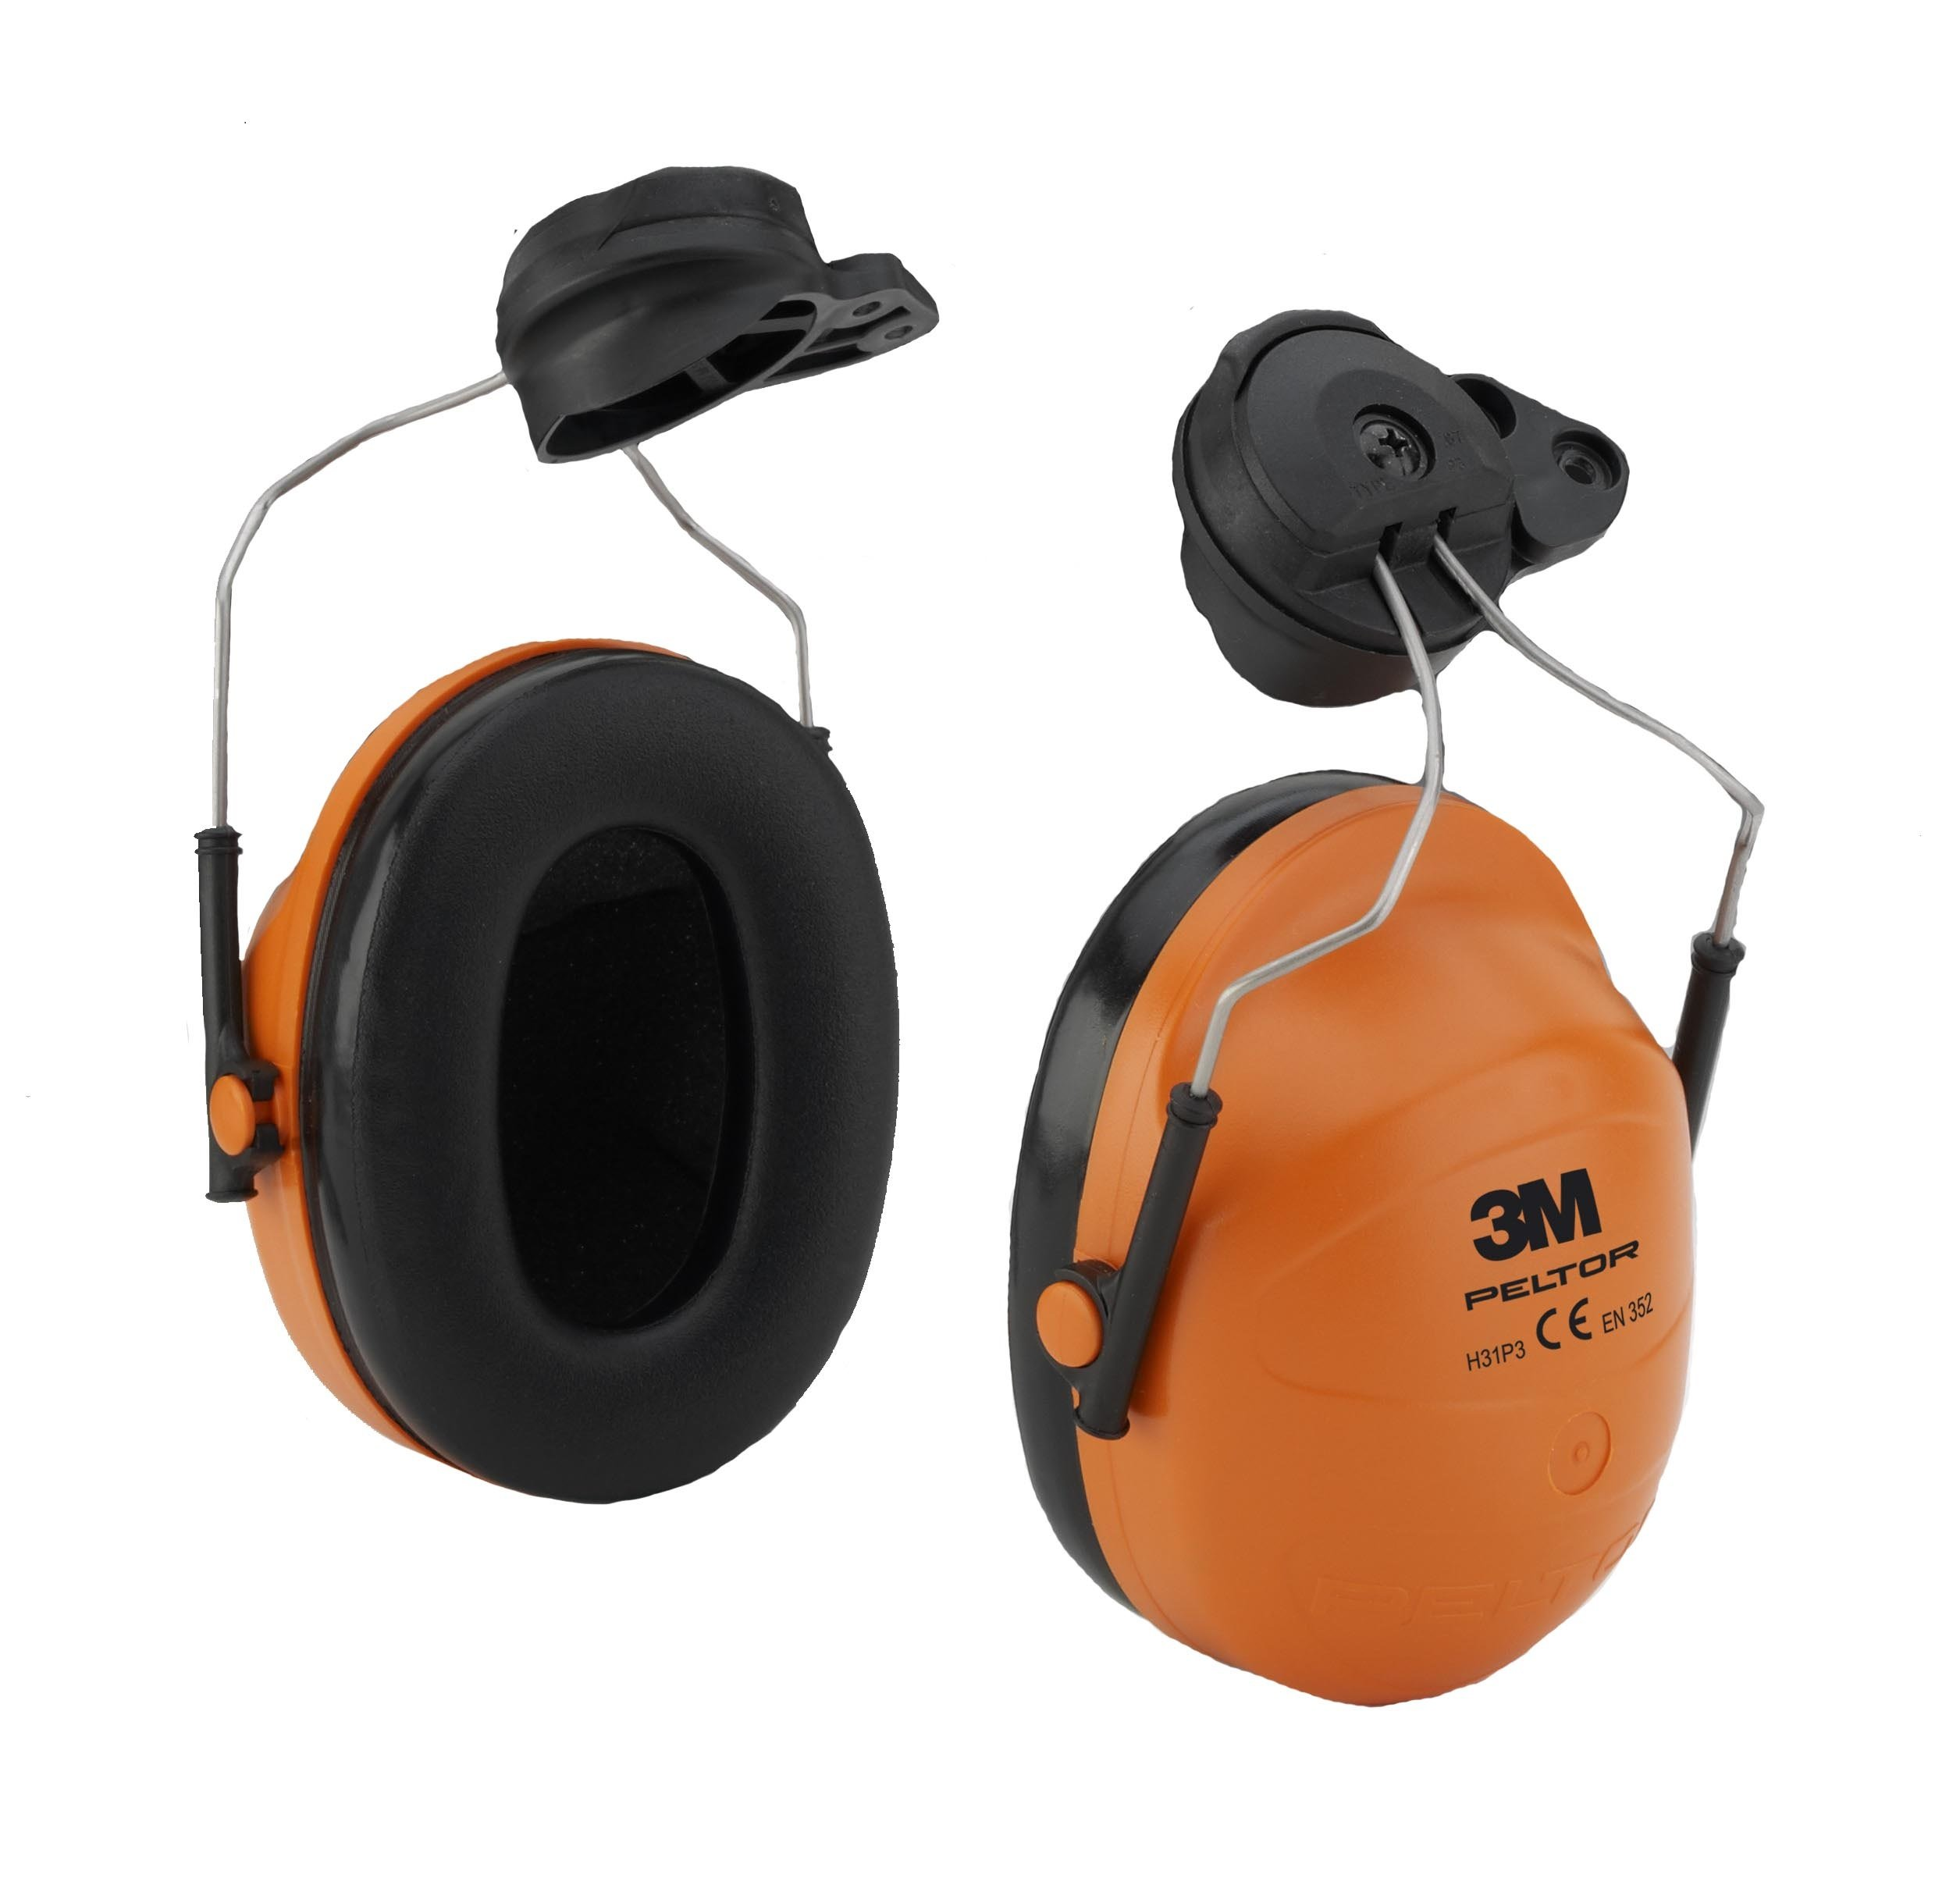 3M Peltor Earmuff Assembly M-985/37333(AAD), for Versaflo M-100 and M-300 Products by 3M Personal Protective Equipment